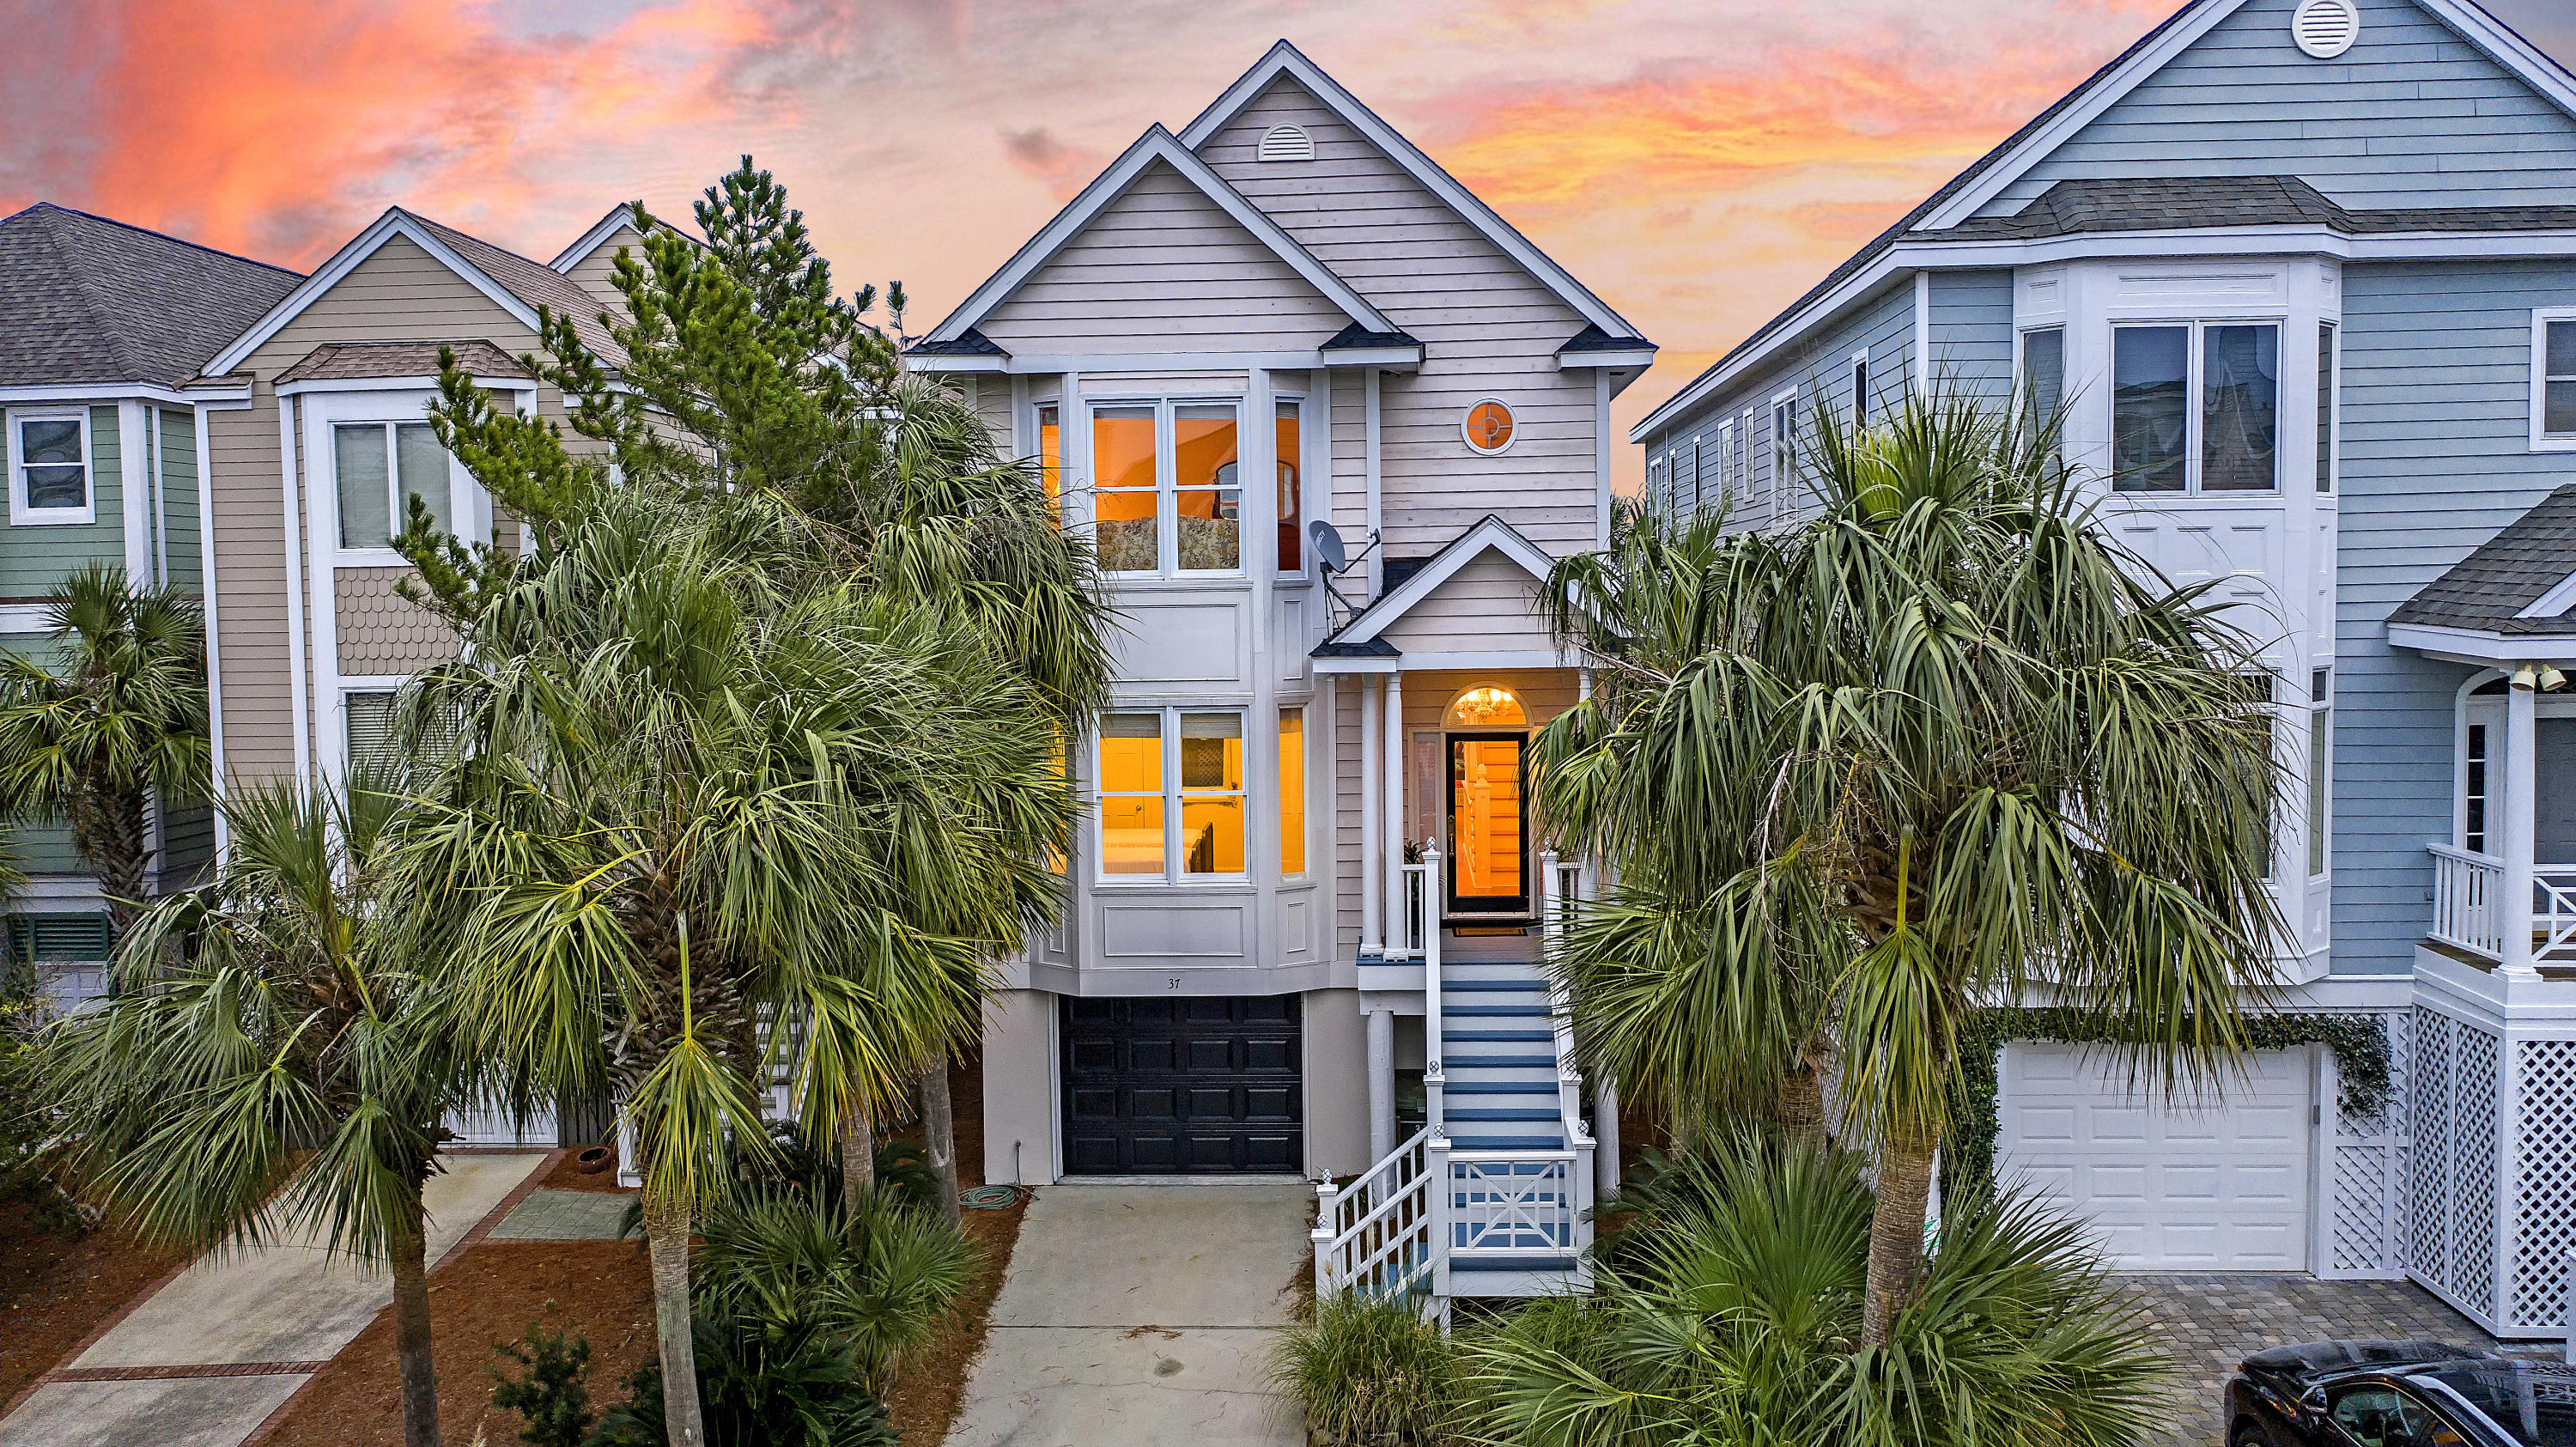 Wild Dunes Homes For Sale - 37 Ocean Point, Isle of Palms, SC - 2